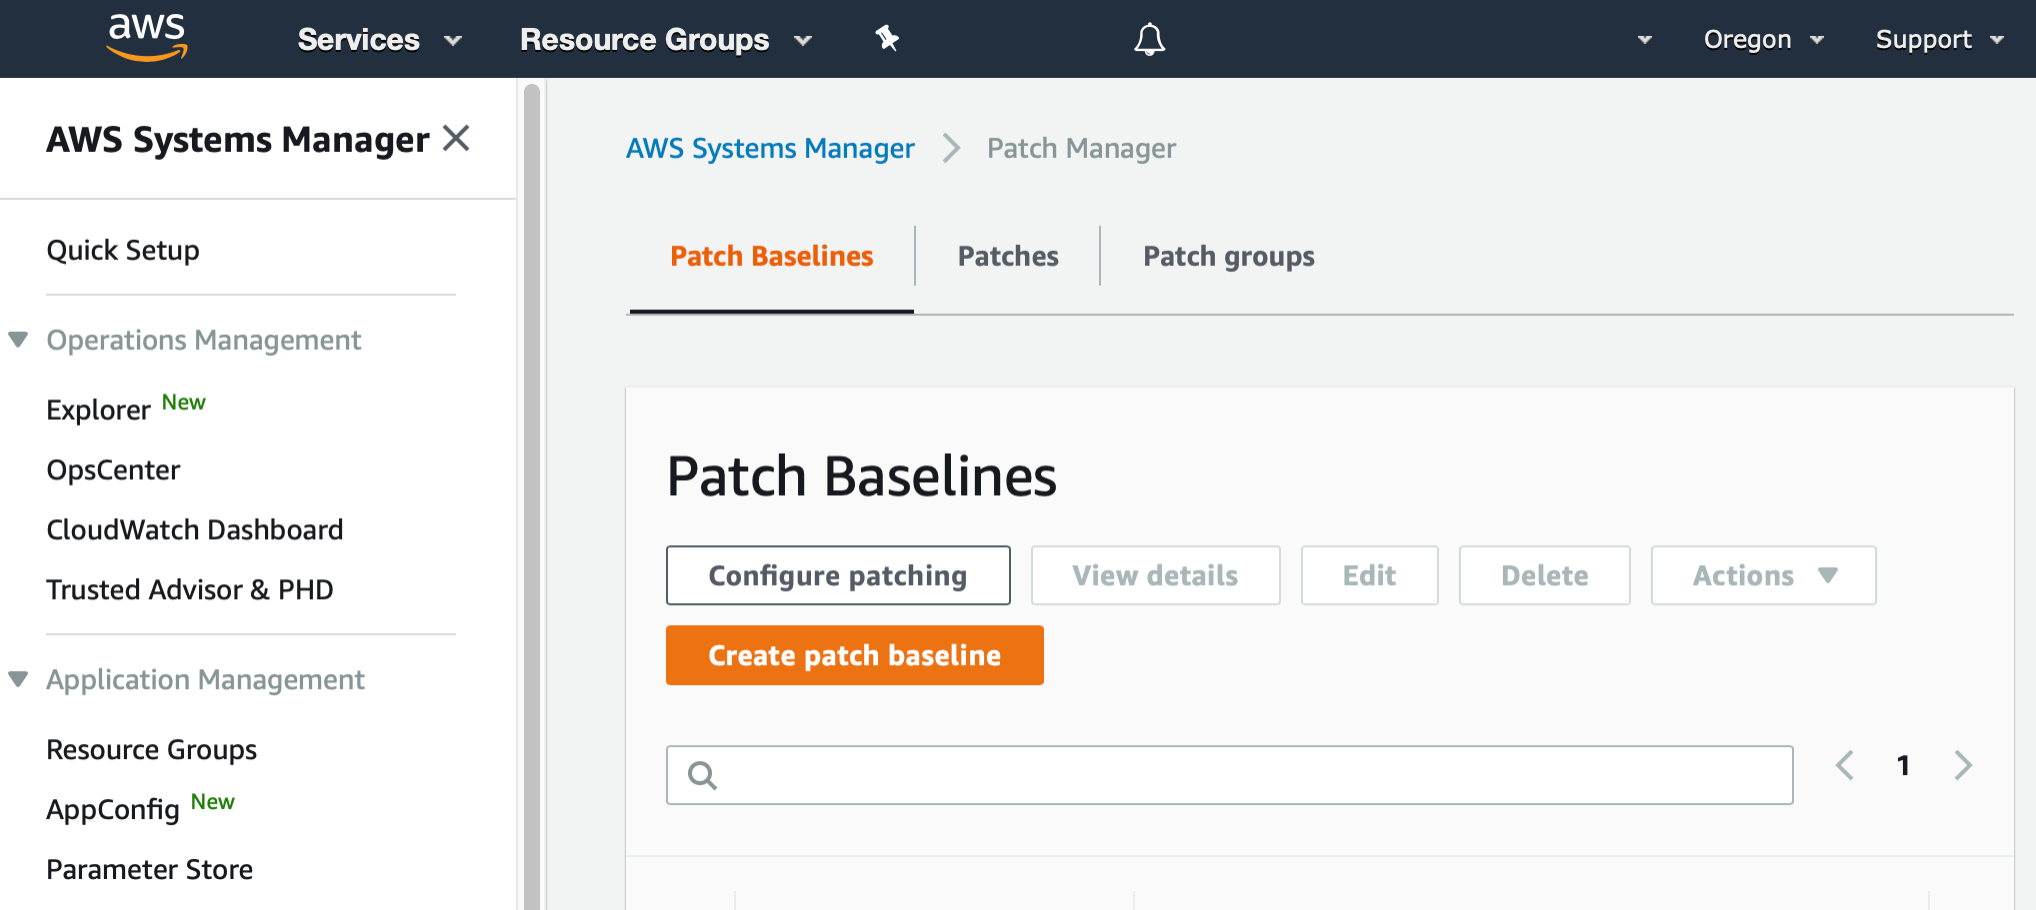 AWS Management Console shows the top of the Patch Baselines page. There is a button labeled Create patch baseline.